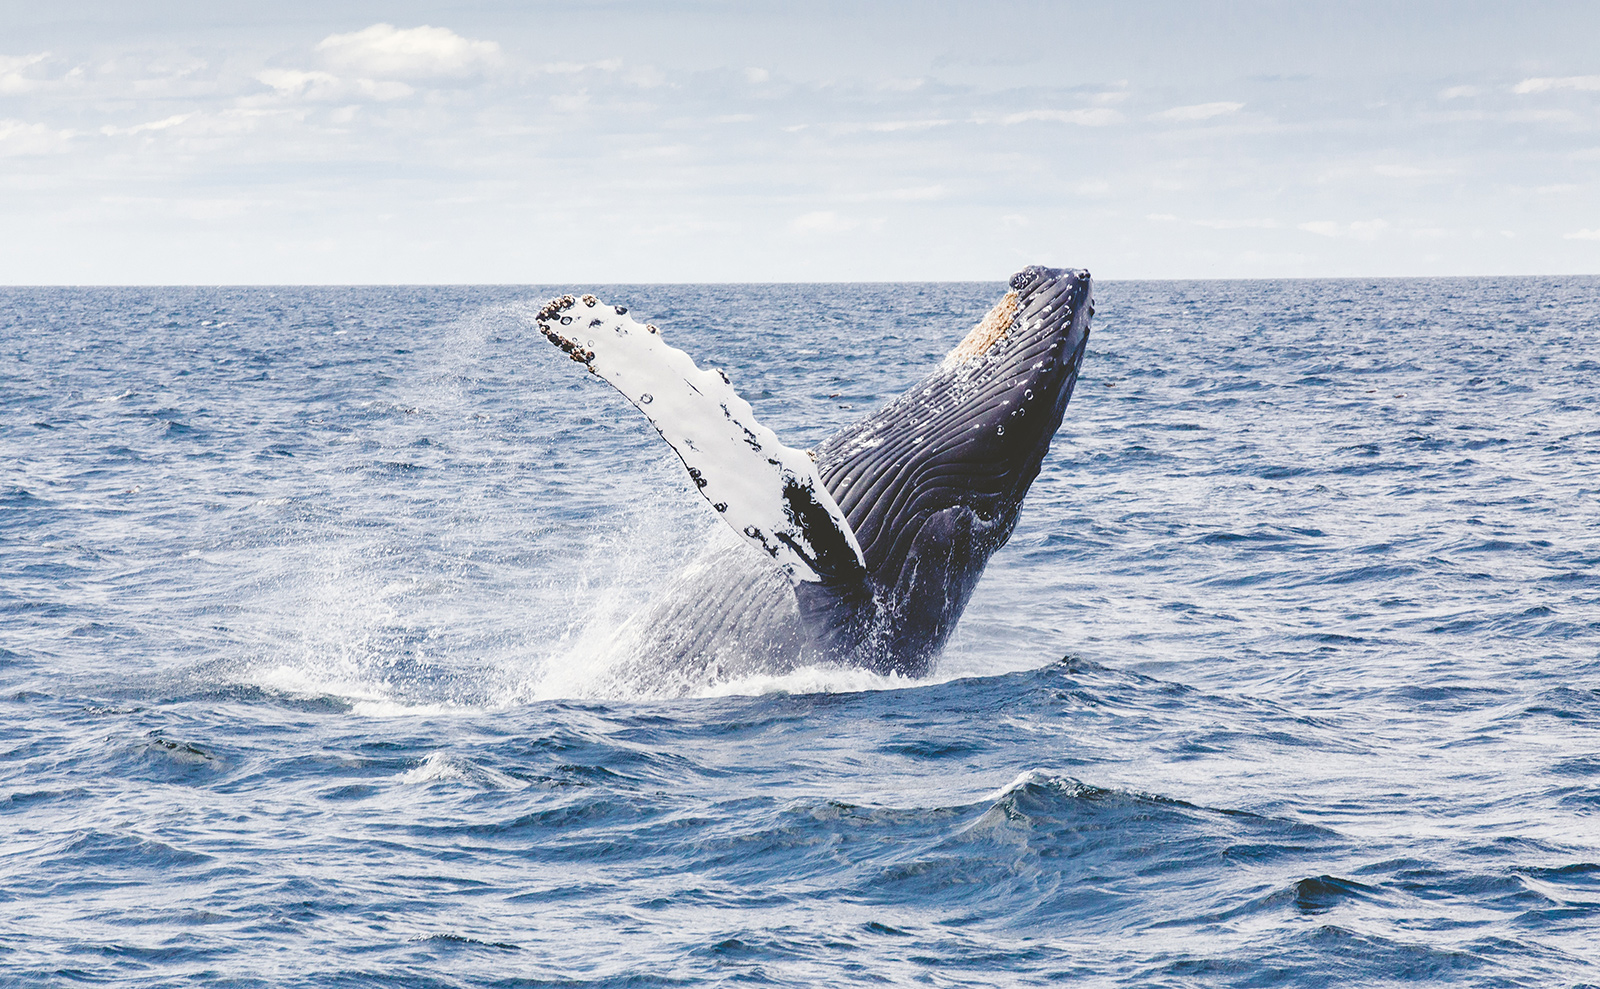 whale jumping out of the ocean